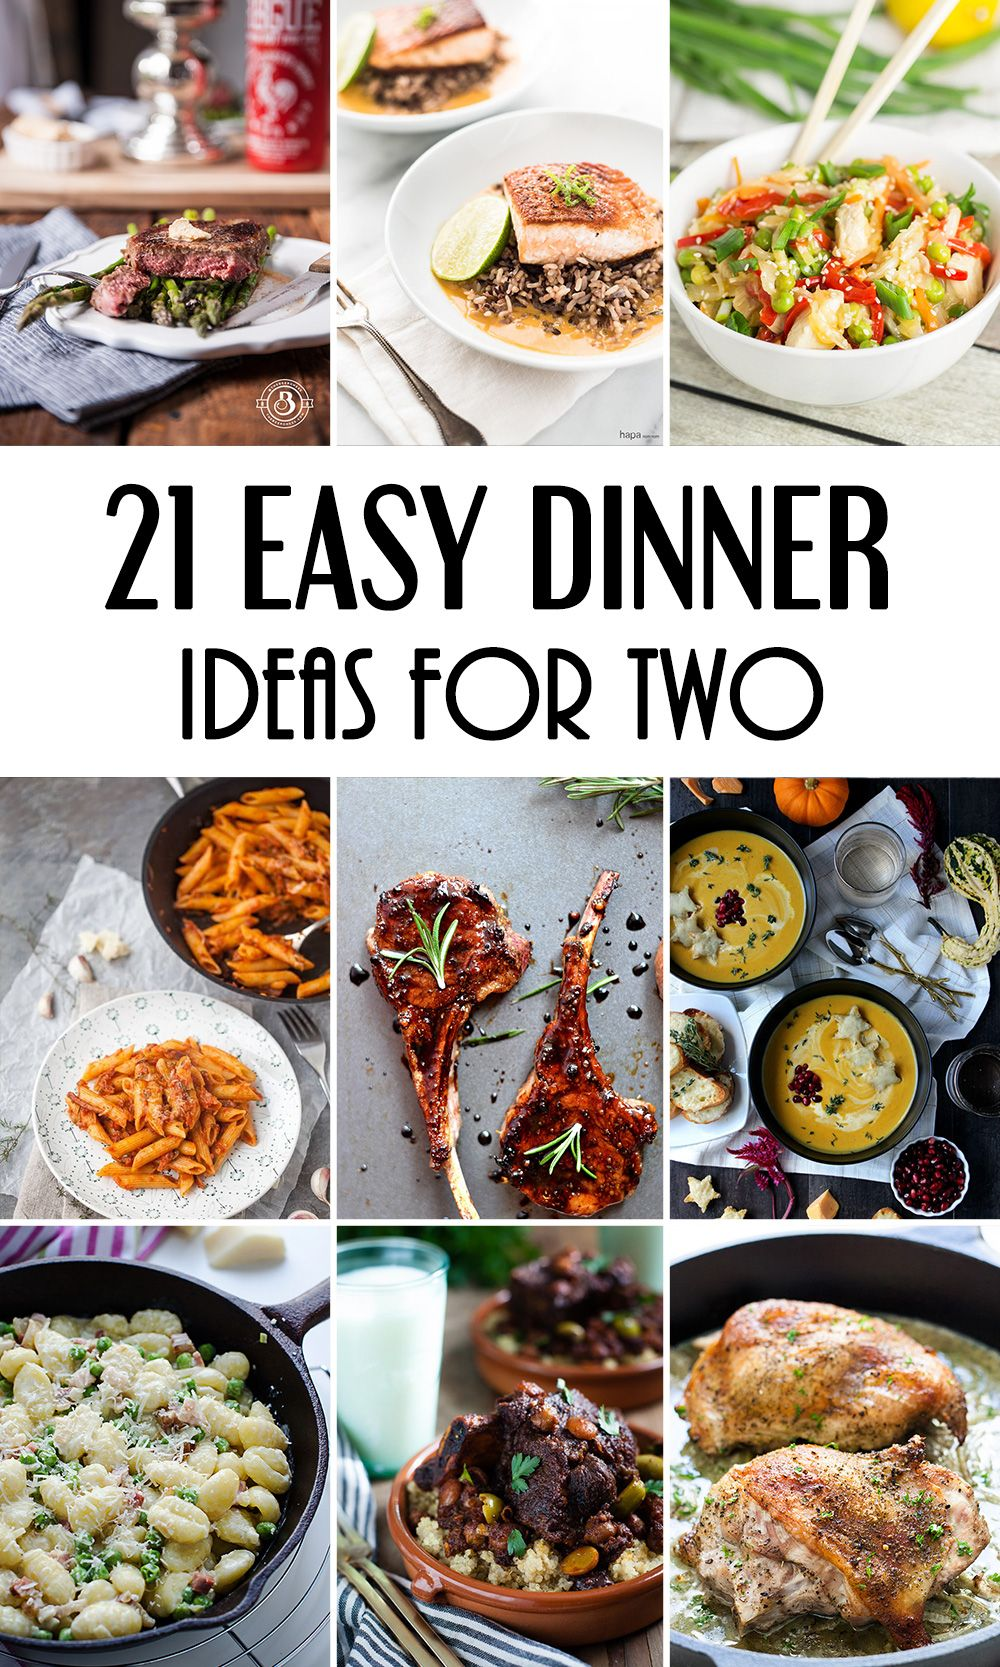 21 easy dinner ideas for two that will impress your loved one 21 easy dinner ideas for two that will impress your loved one forumfinder Images